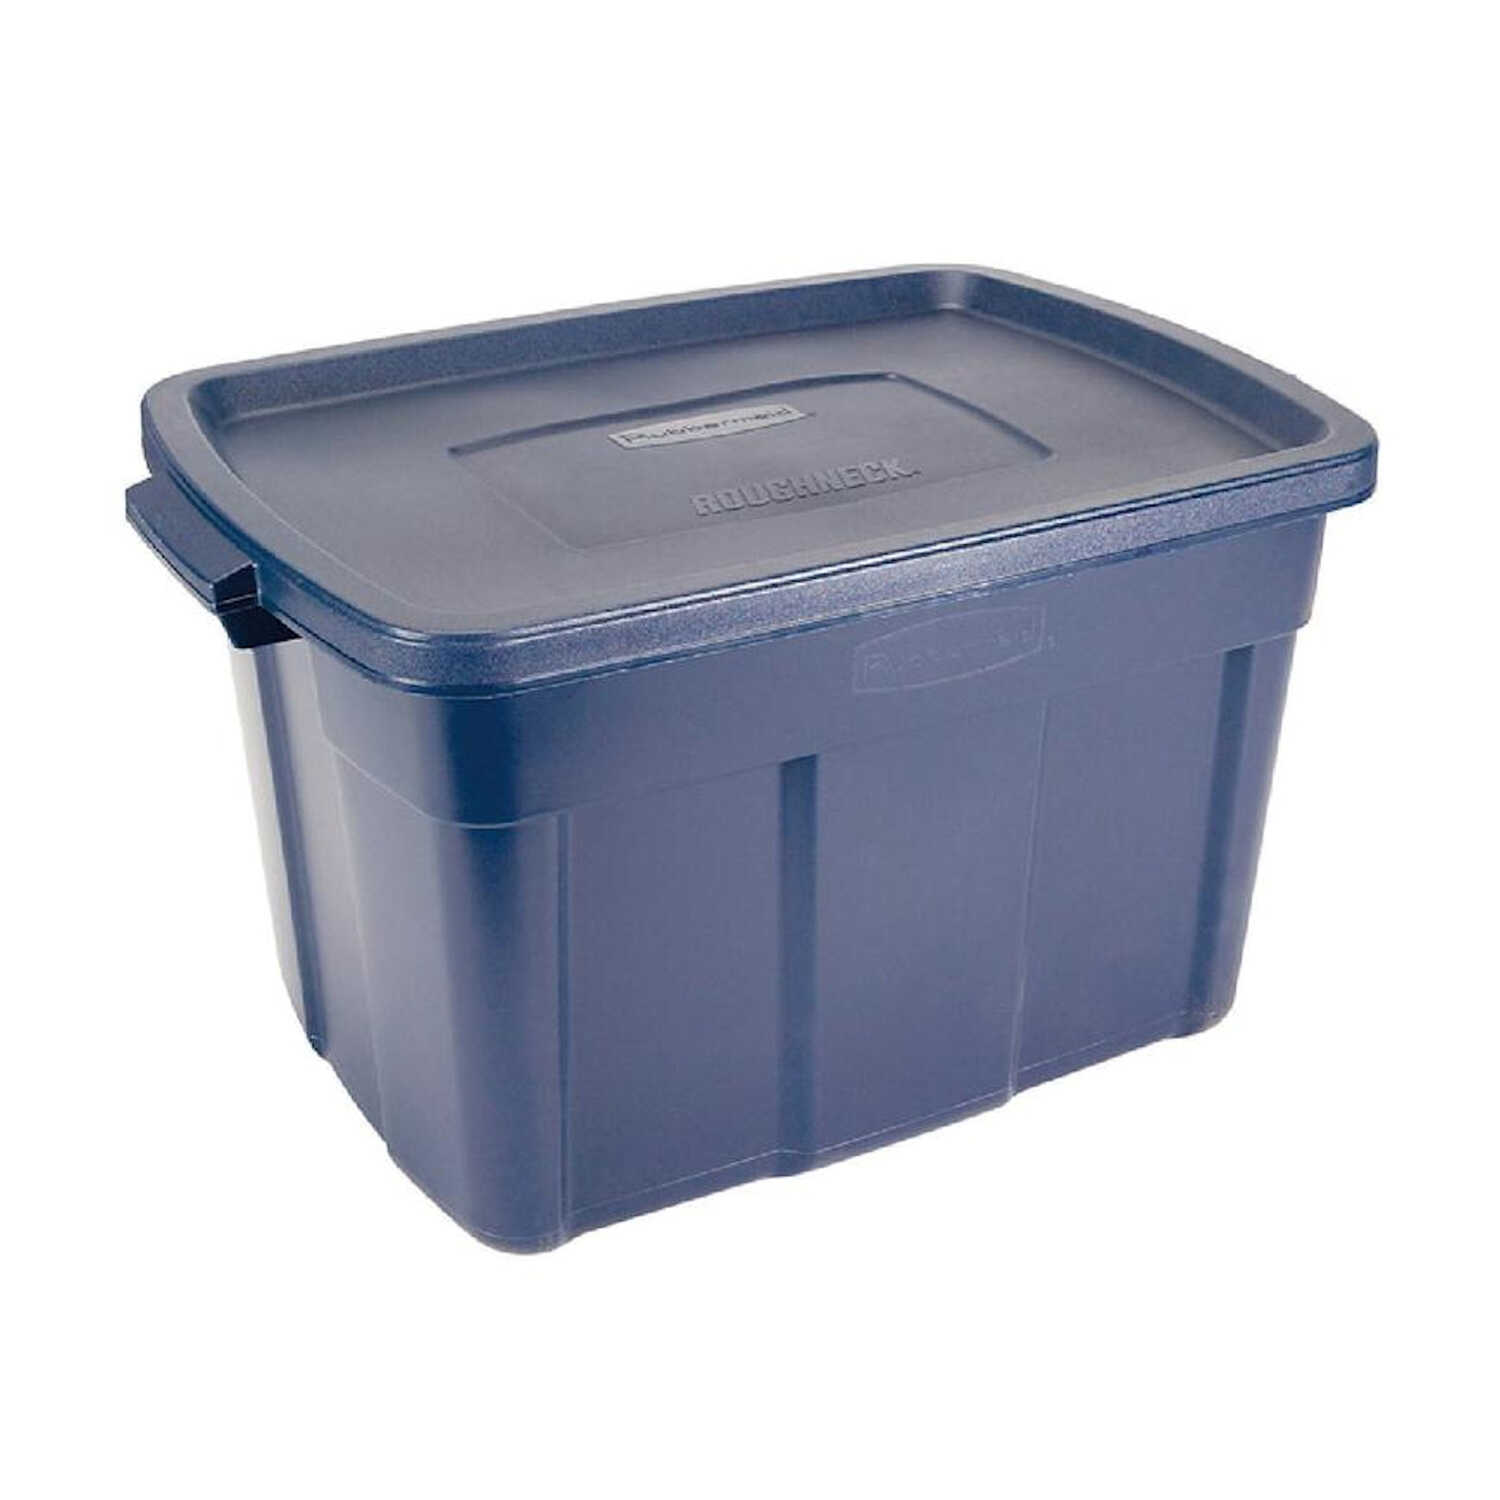 Rubbermaid  Roughneck  23-5/16 in. H x 18-1/2 in. W x 28.875 in. D Stackable Storage Box